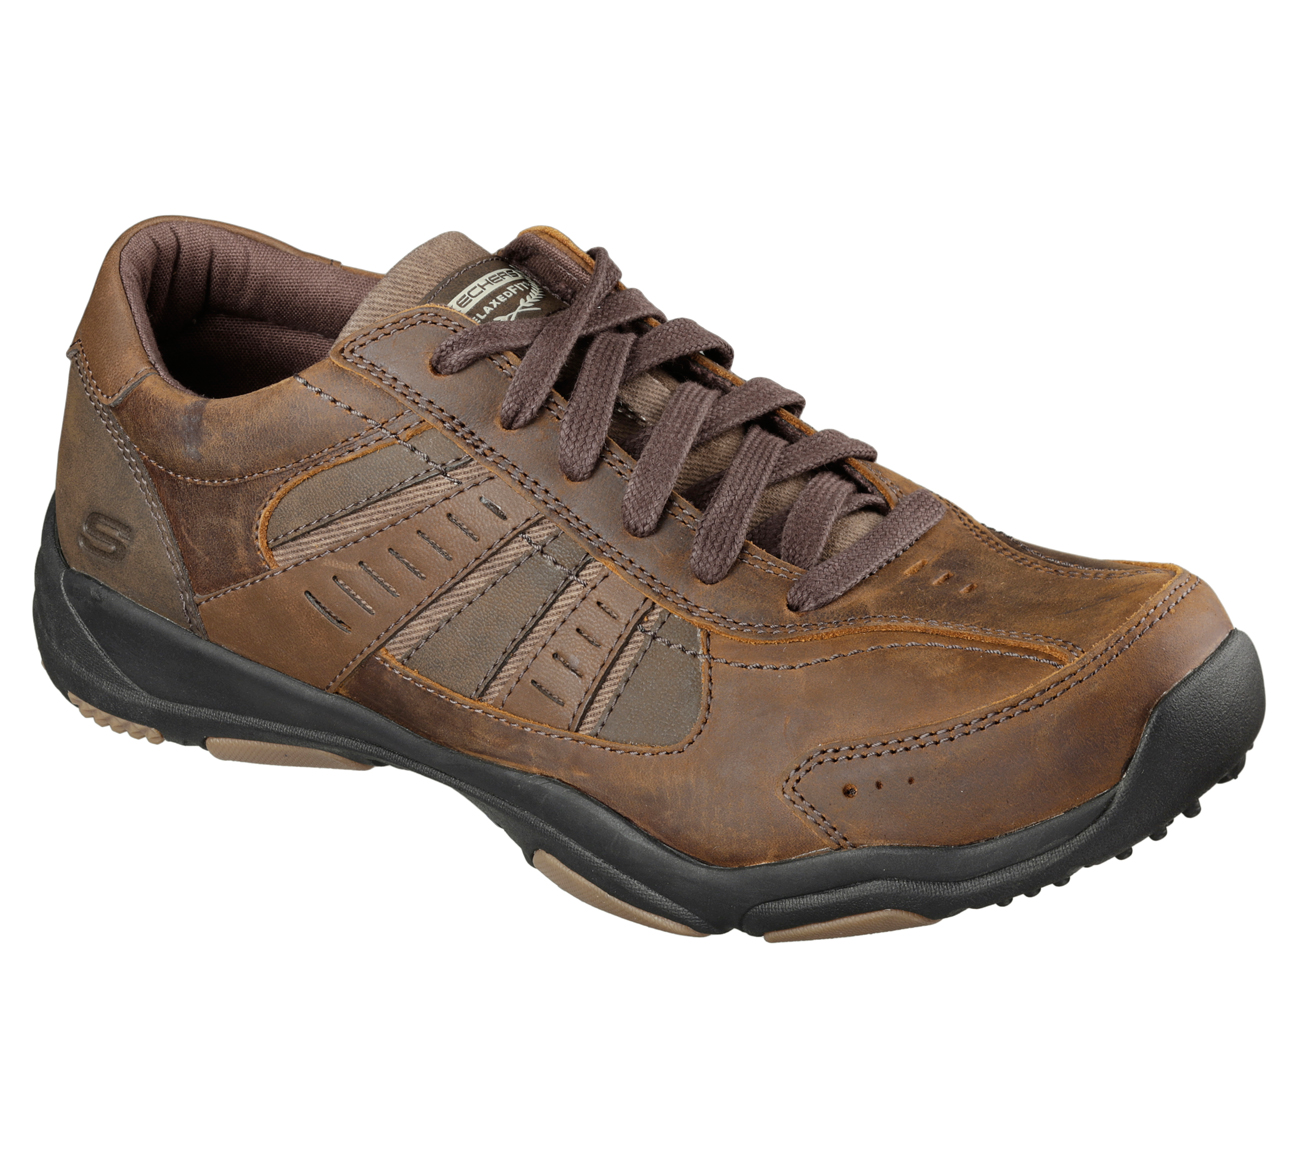 Buy Skechers Shoes Online in Australia, Compare Prices of Products from 10 Stores. Lowest Price is. Save with angeloppera.cf!